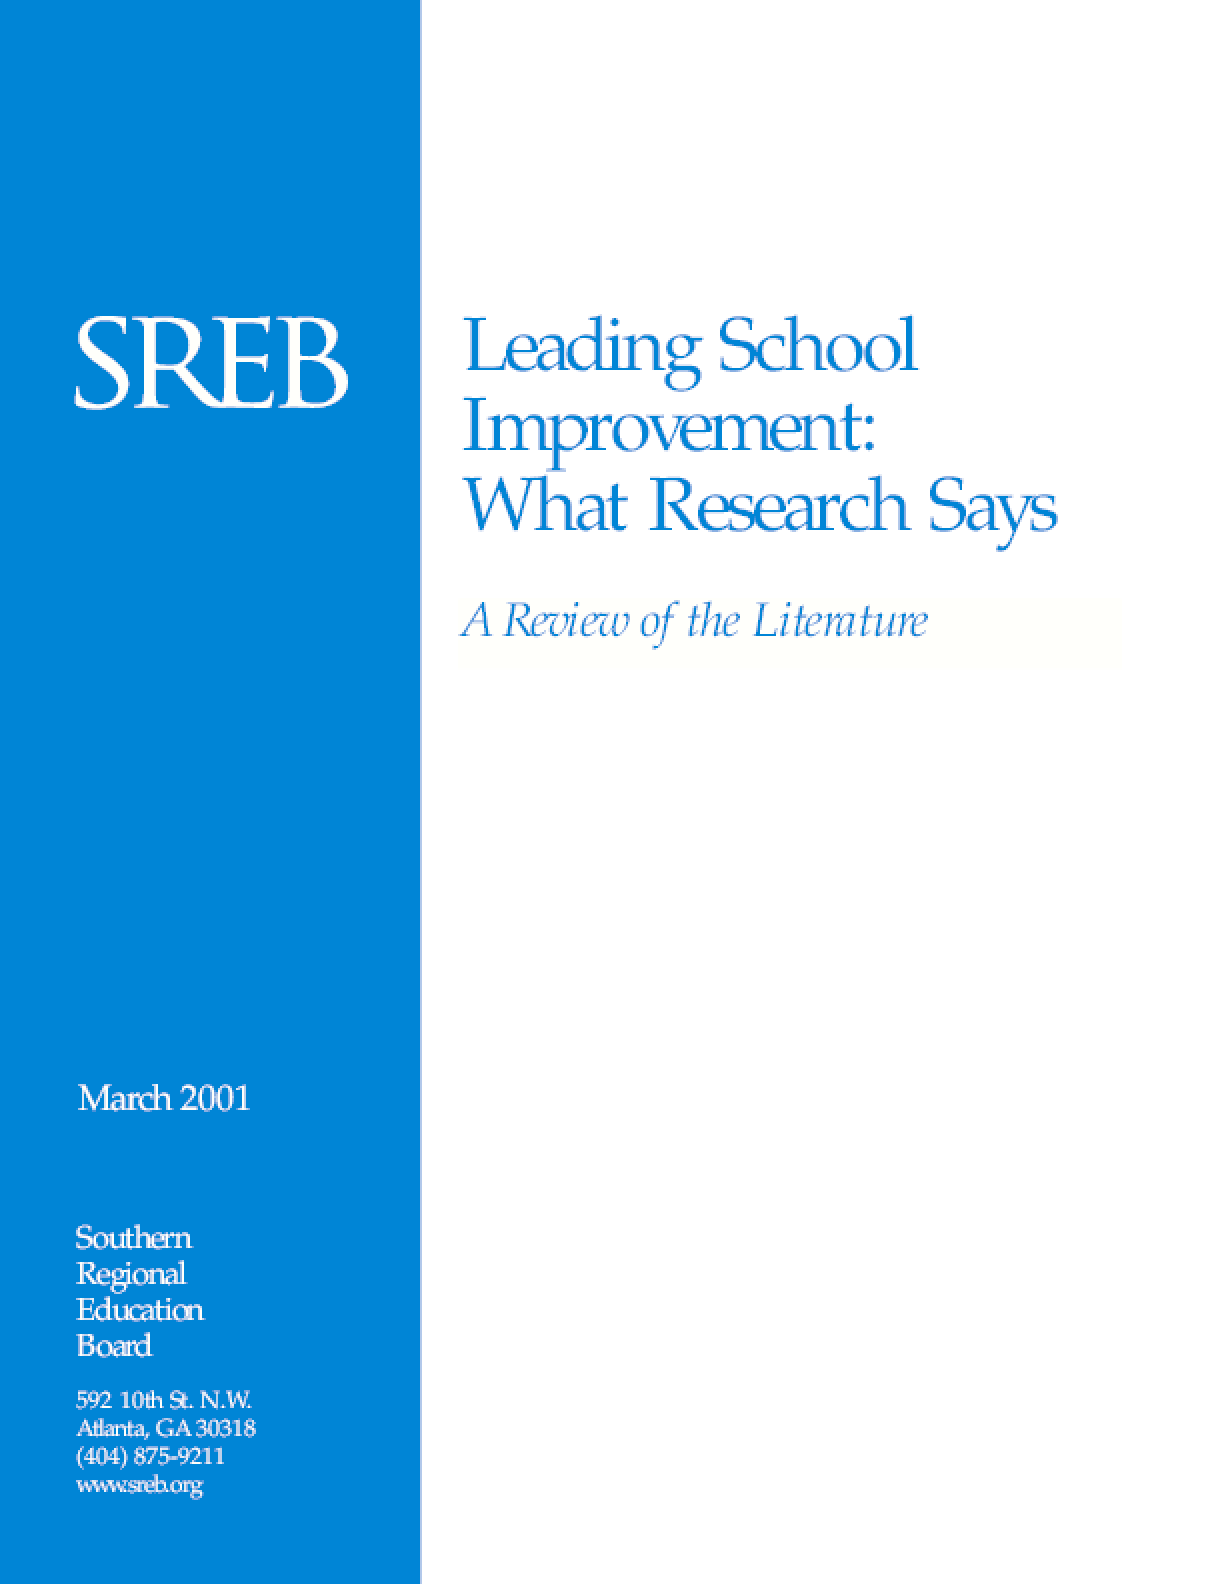 Leading School Improvement: What Research Says